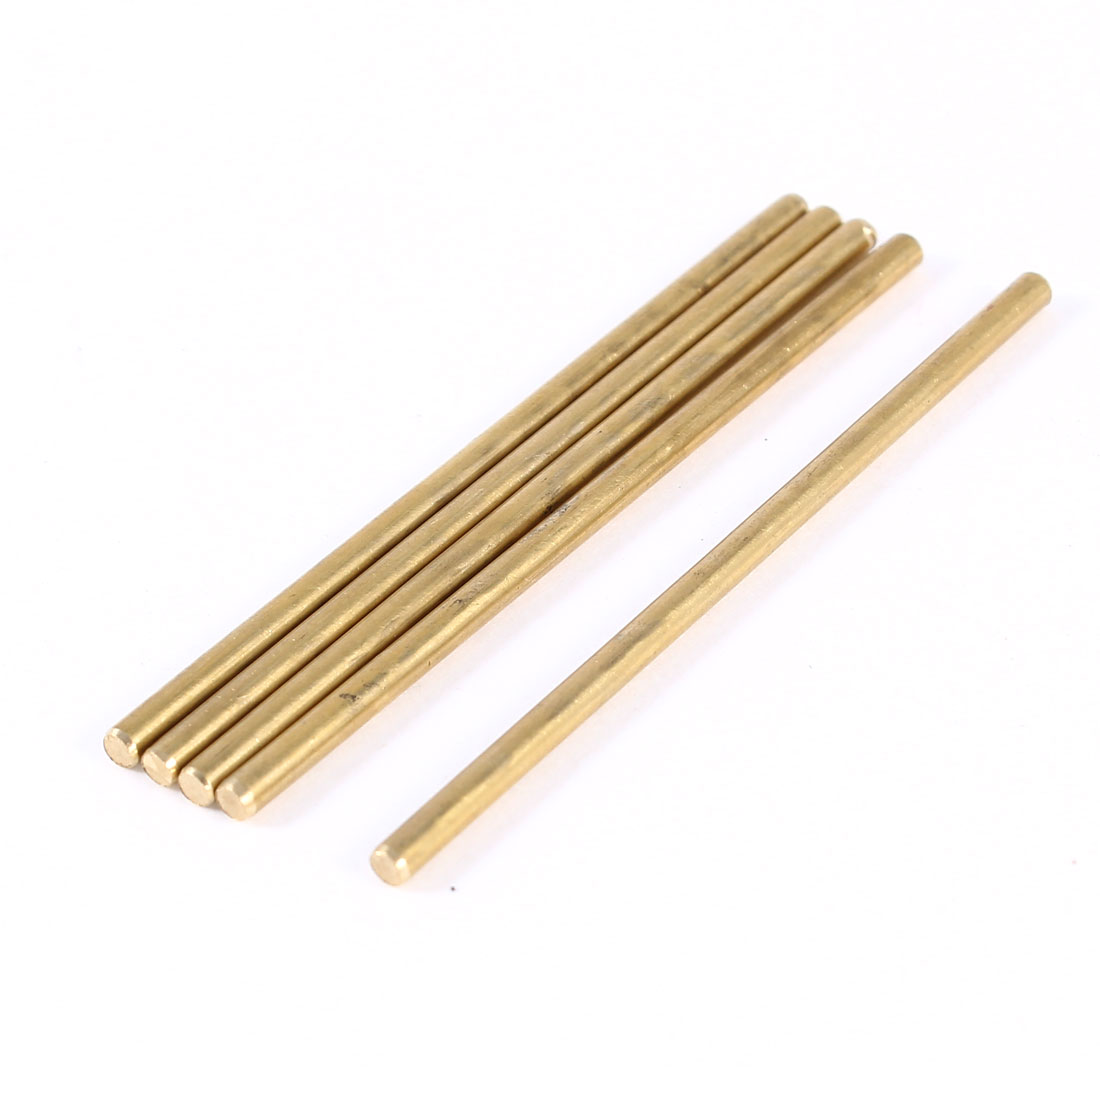 5 Pcs Car Helicopter Model Toy DIY Brass Axles Rod Bars 2mm x 50mm